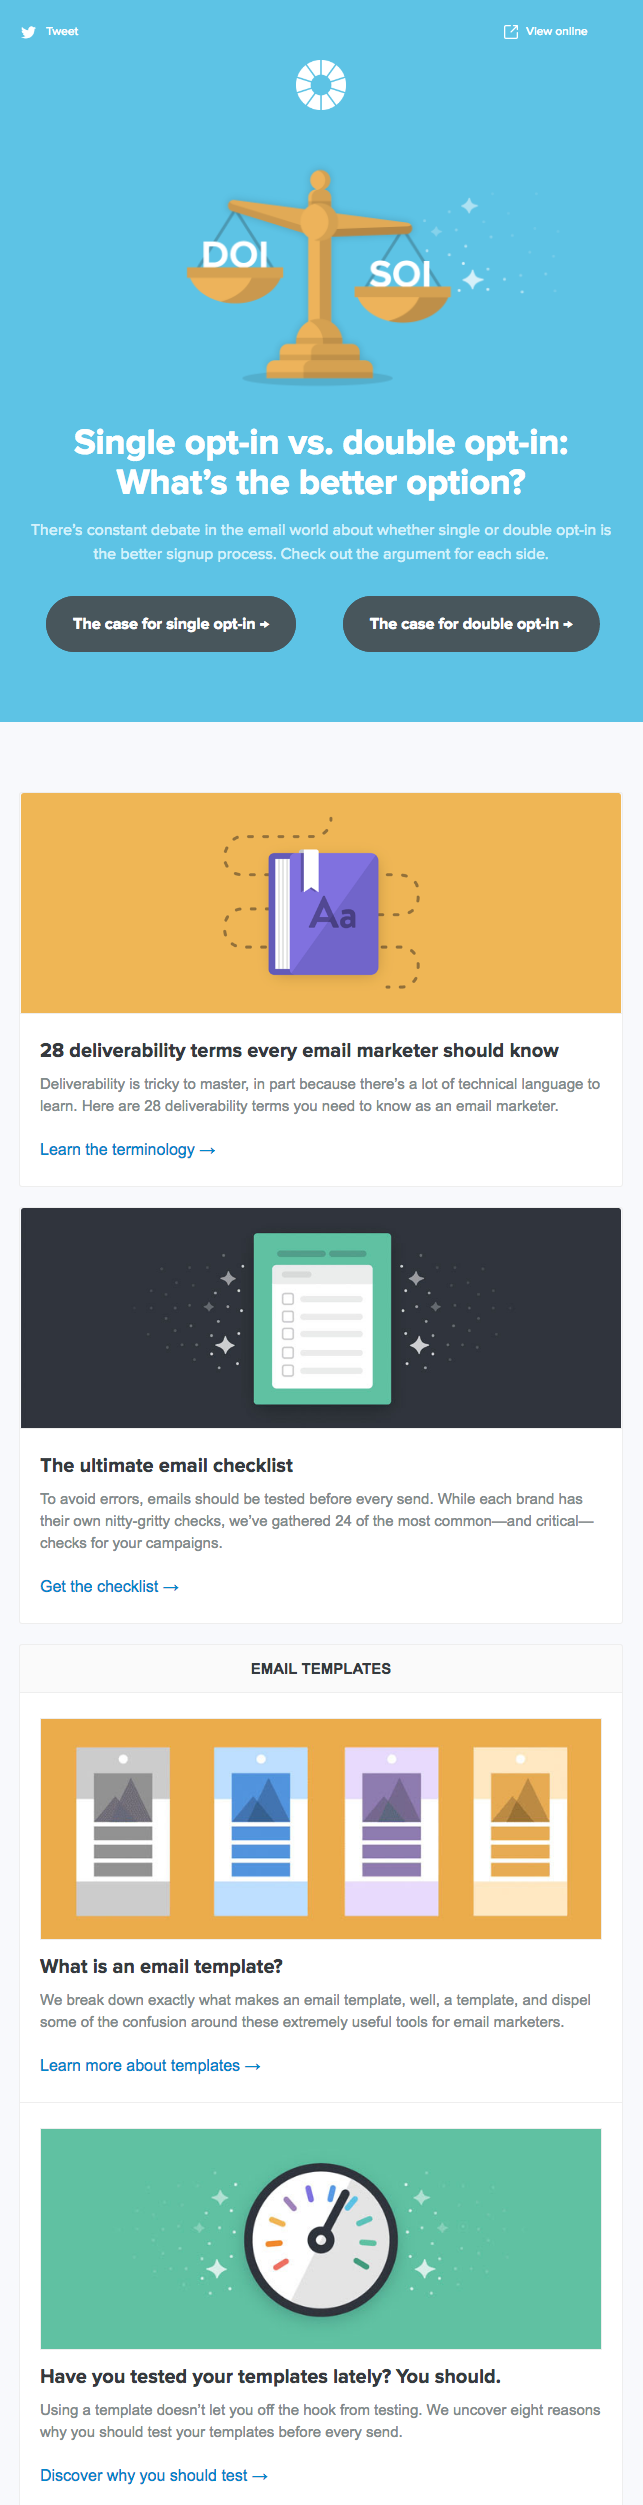 Email newsletter example design with blogs and templates by Litmus